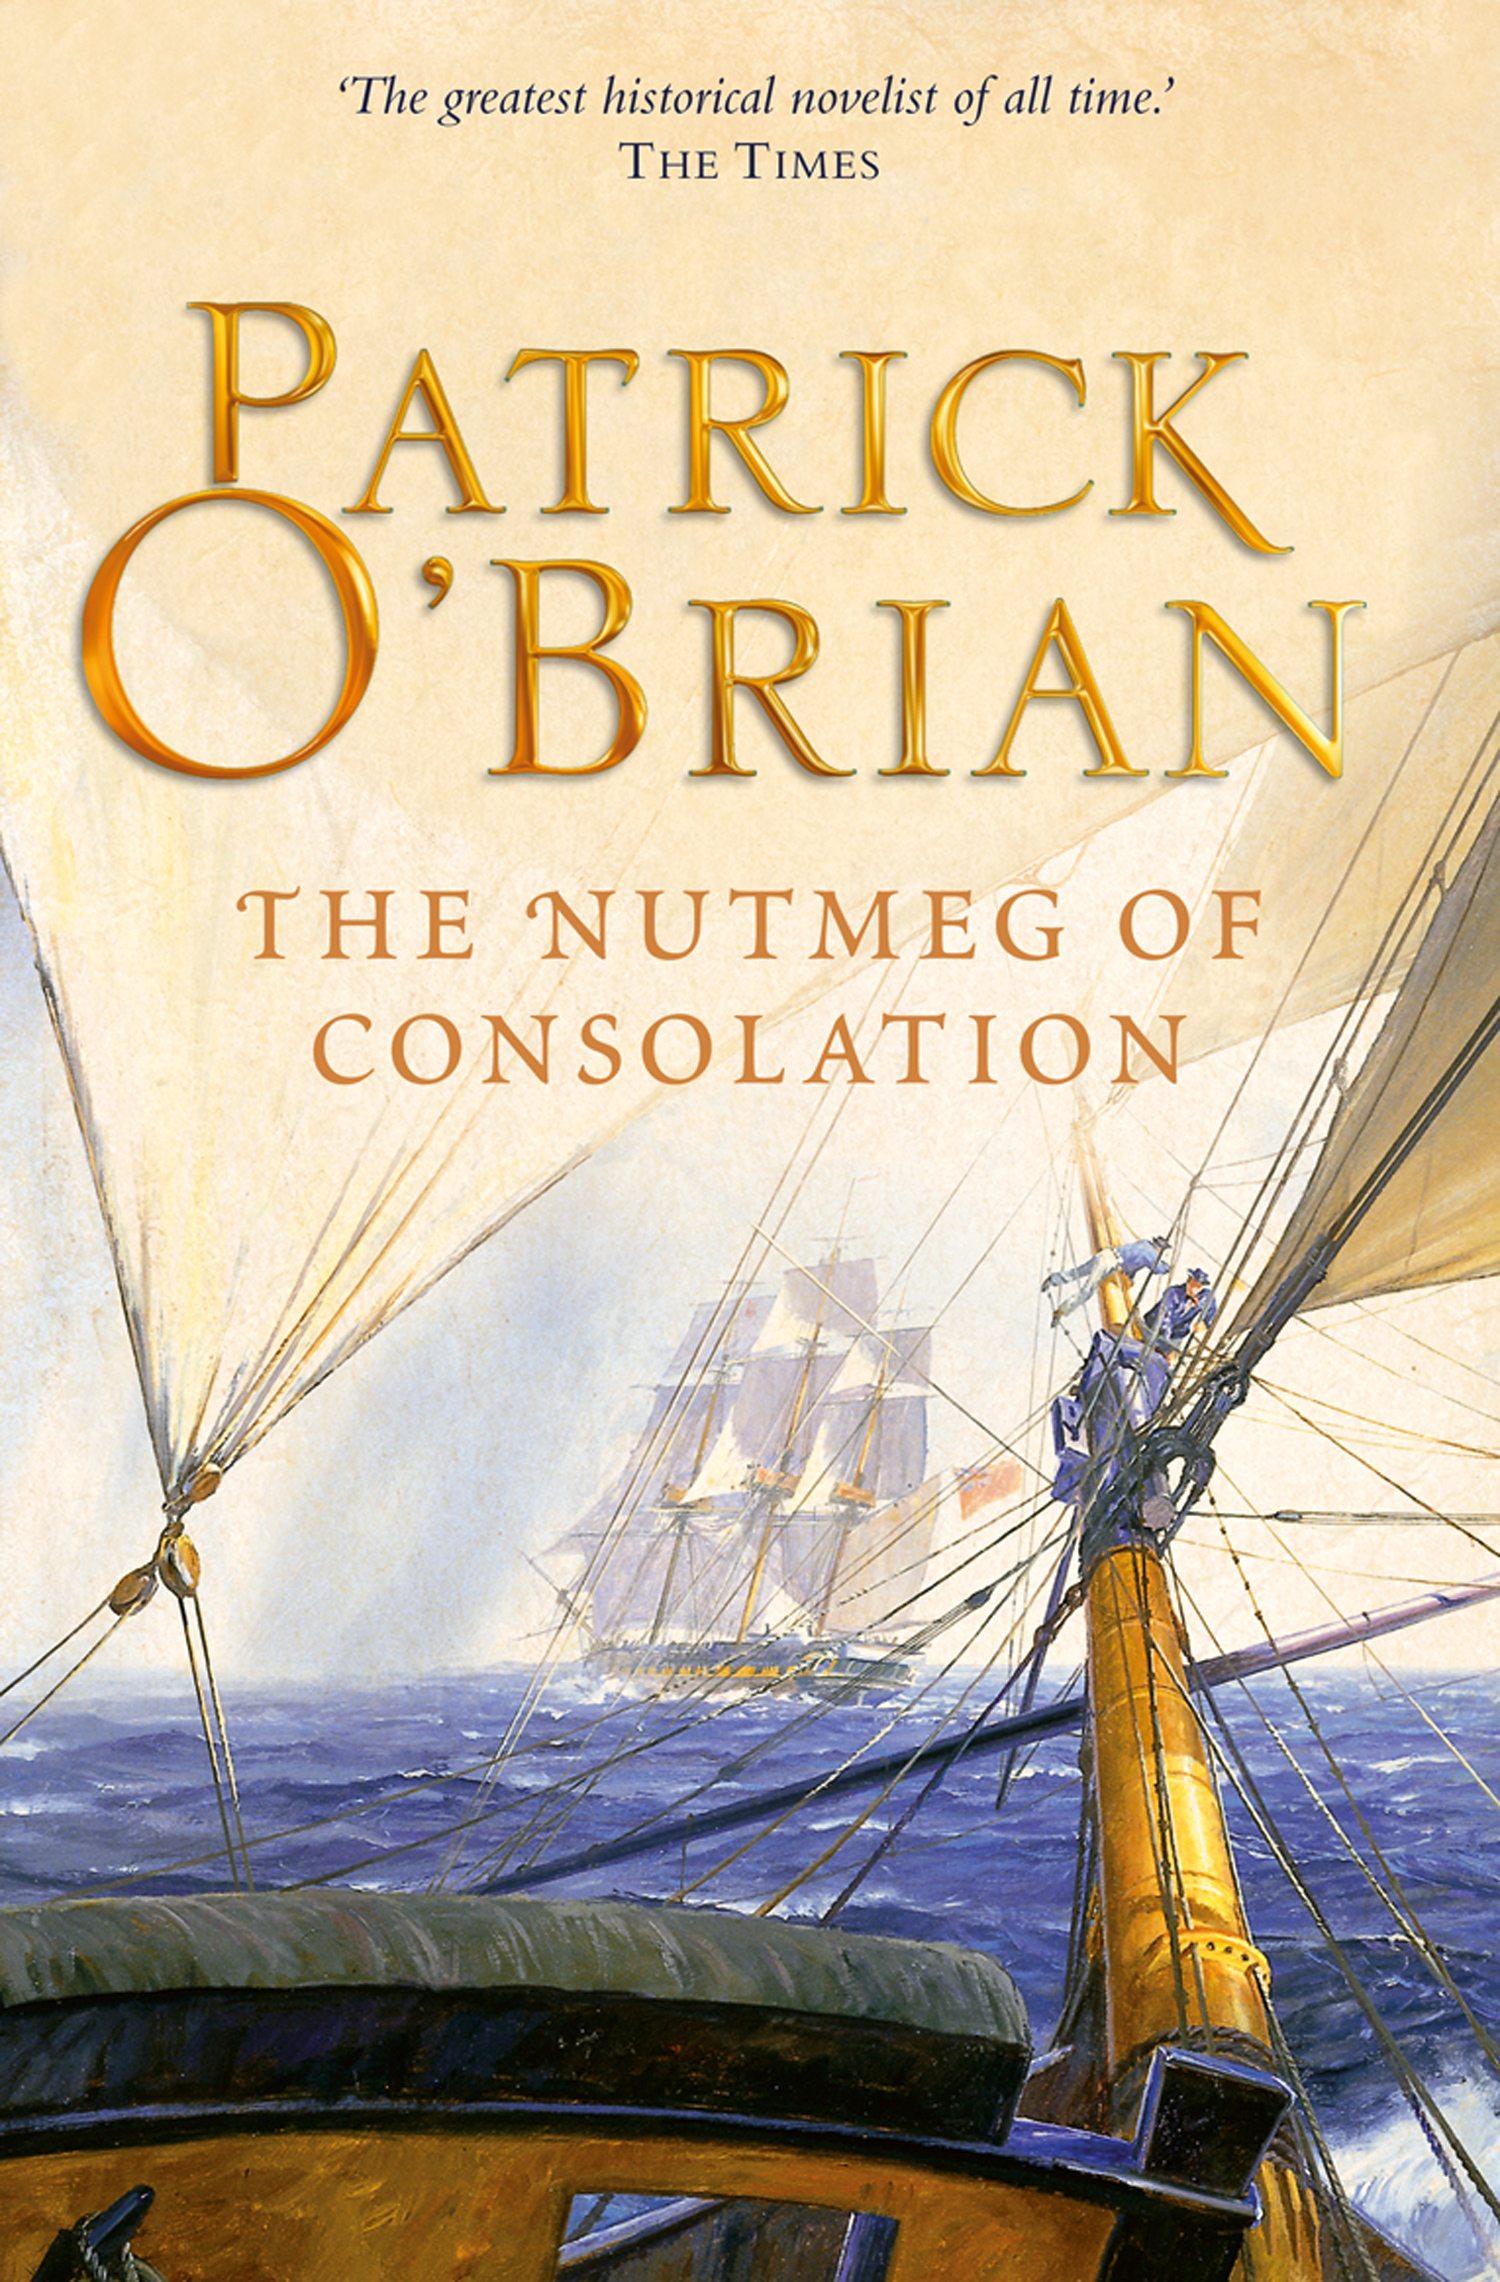 The Nutmeg of Consolation: Aubrey/Maturin series, book 14